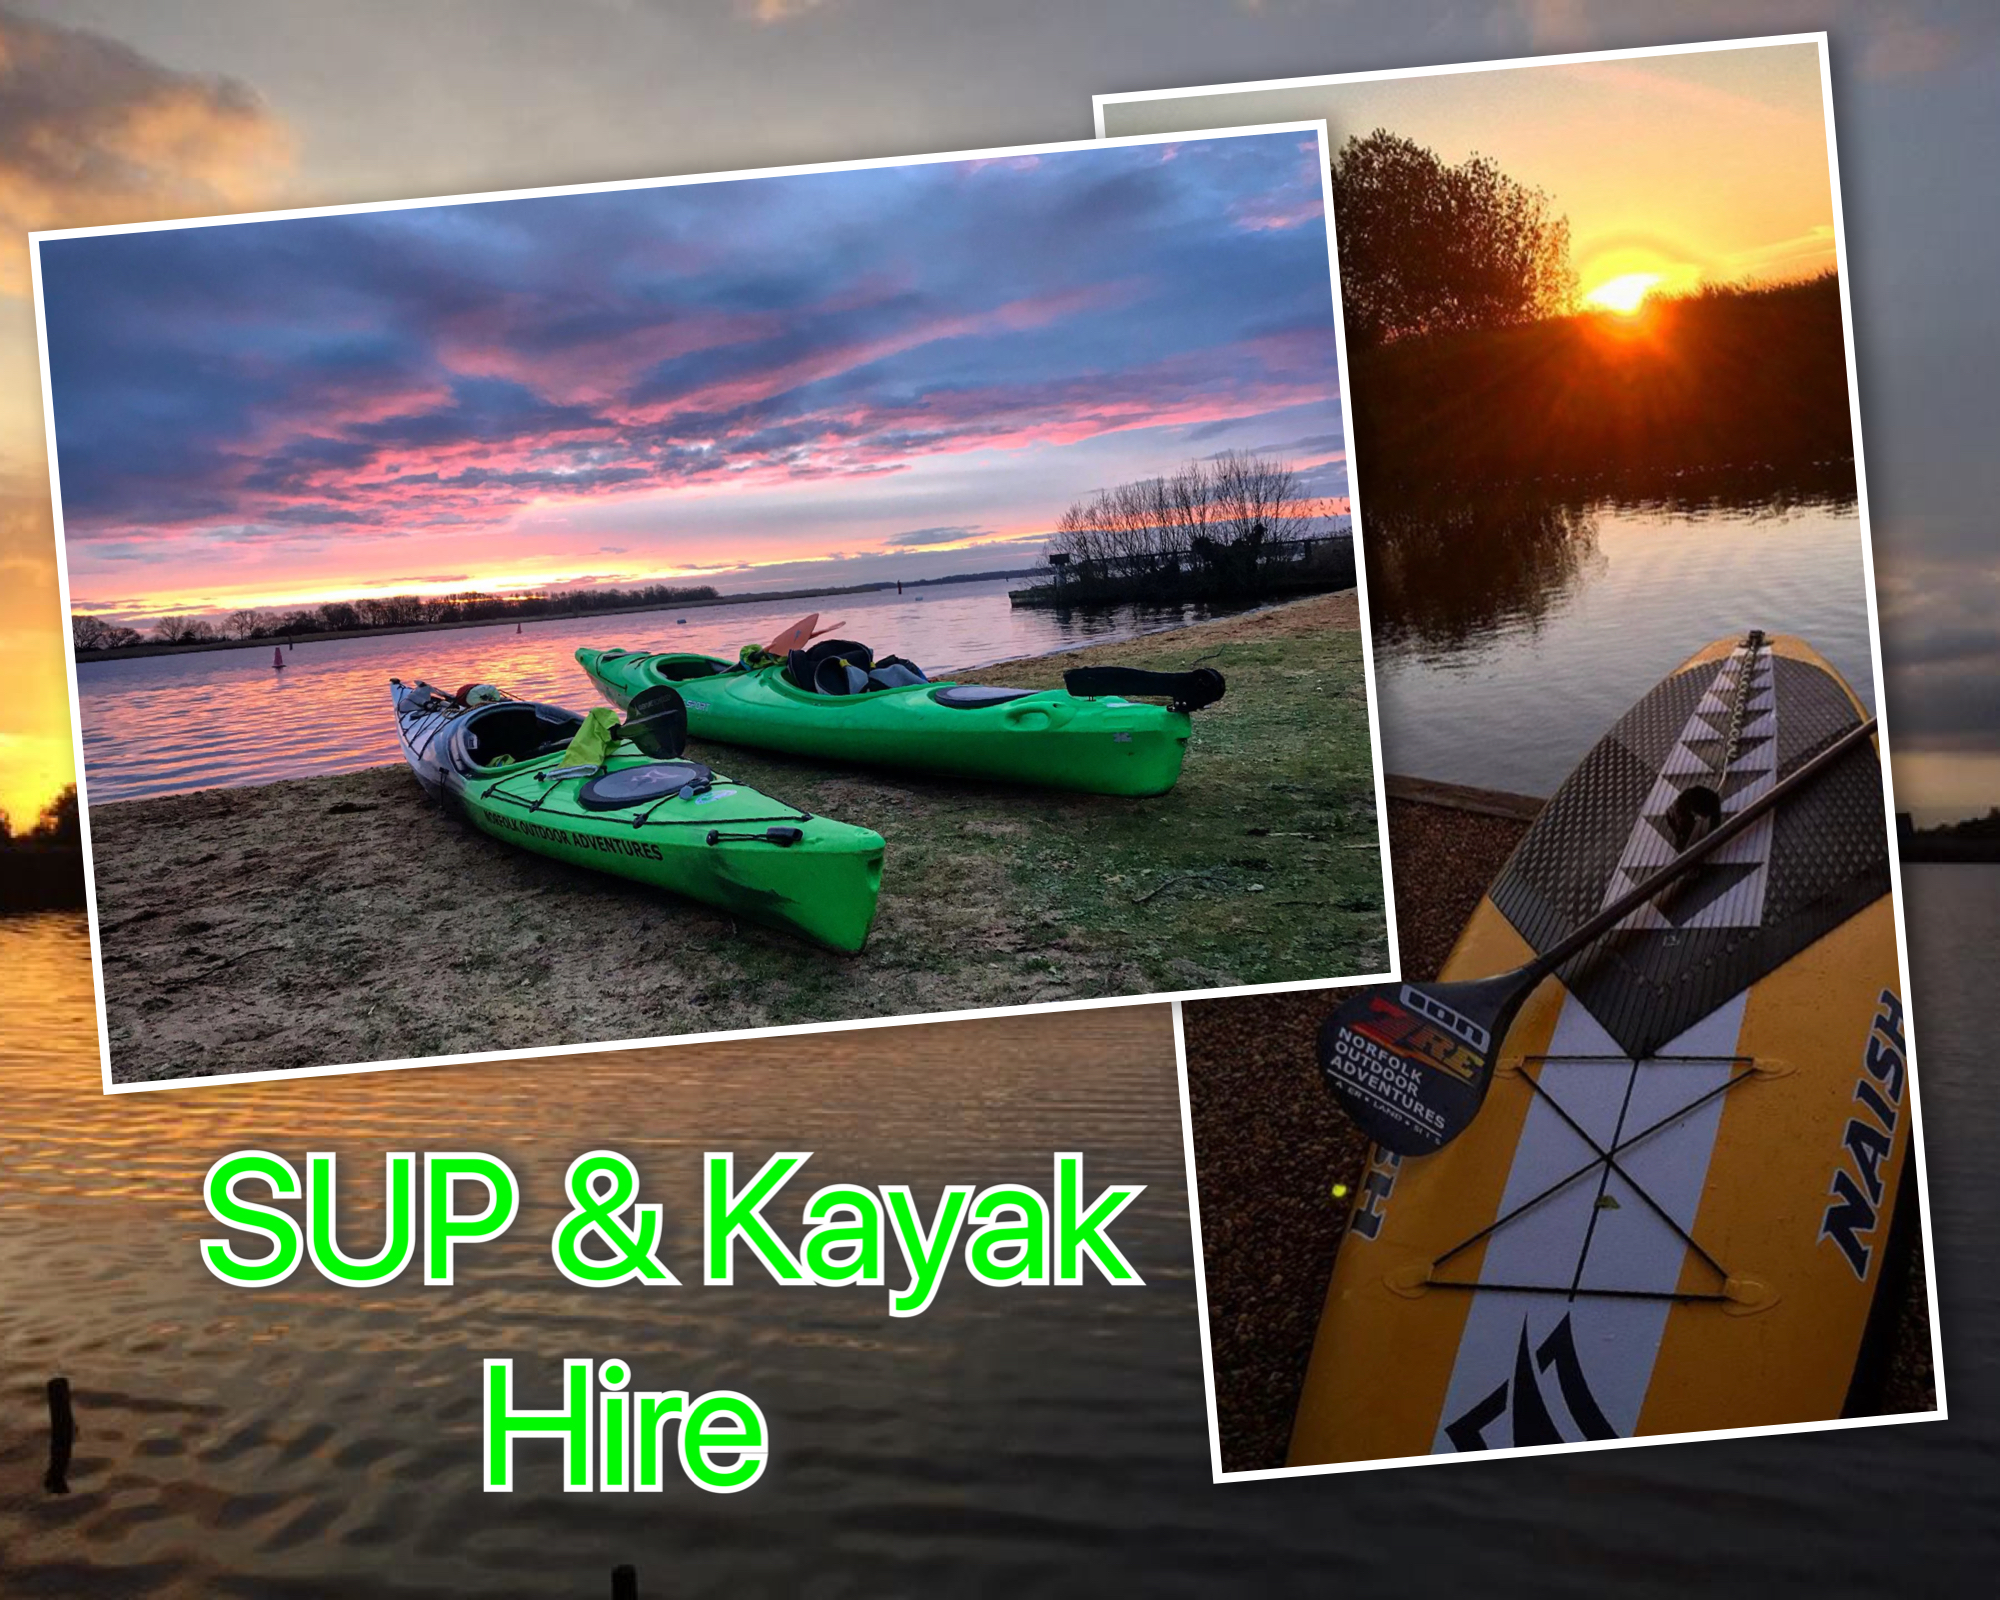 SUP& Kayak Hire.jpg